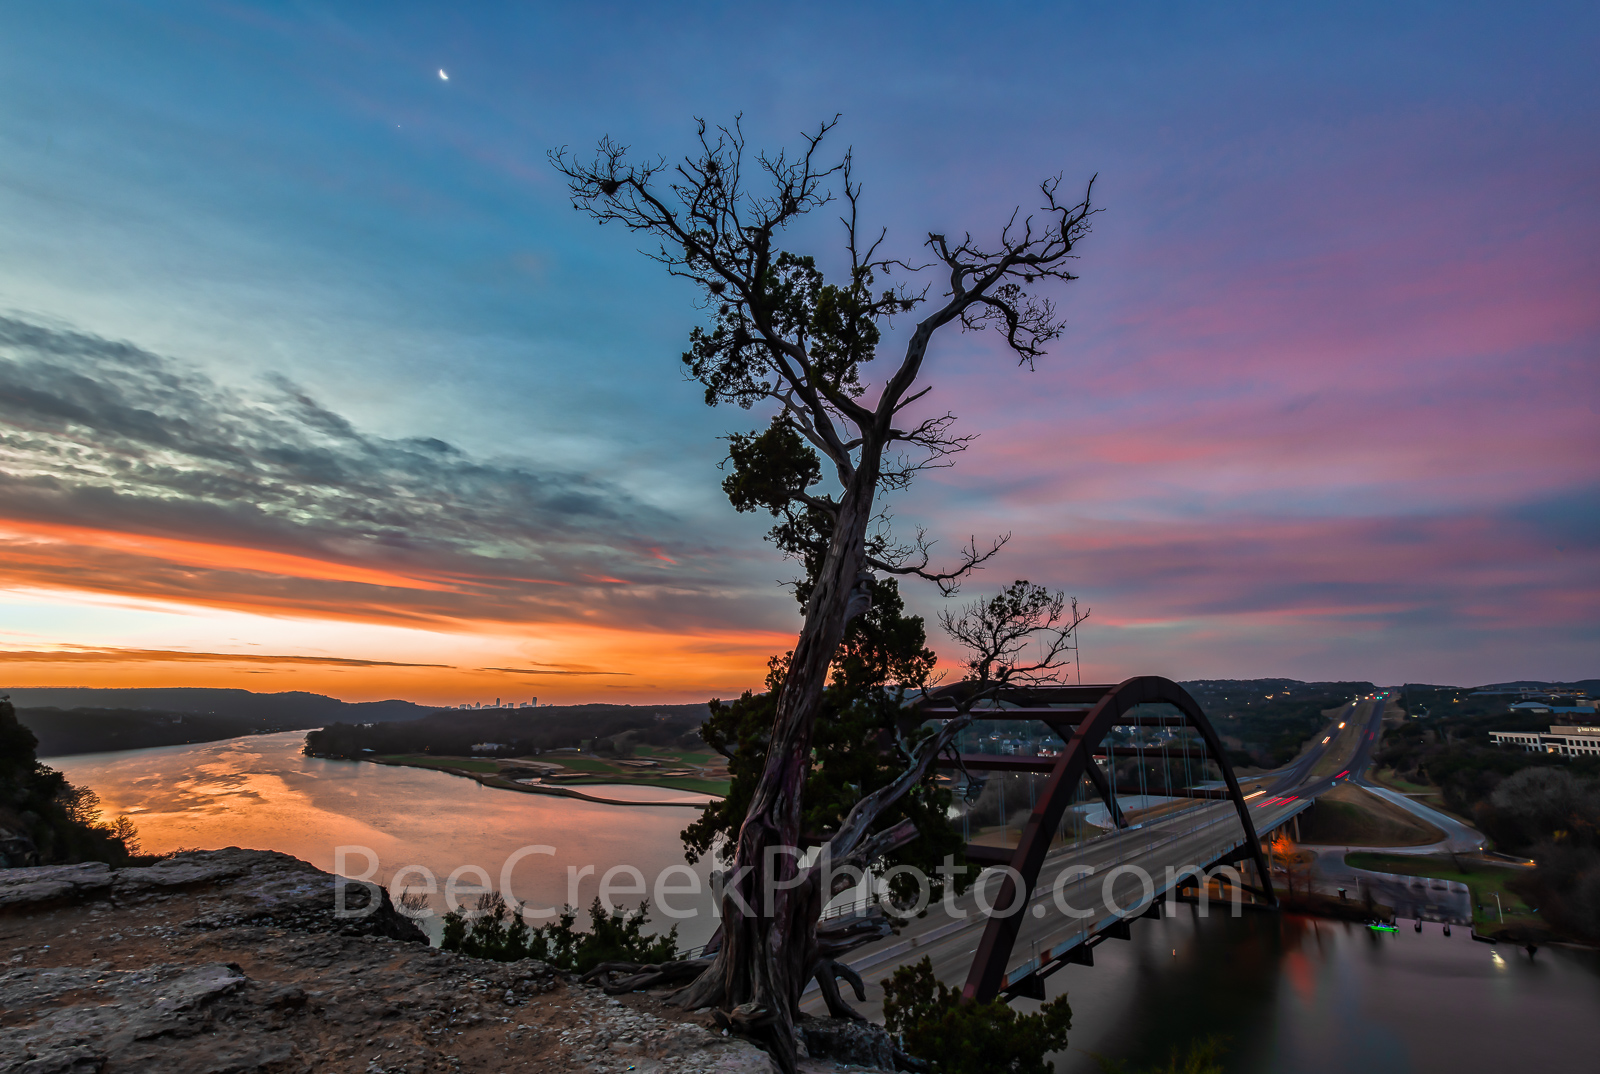 Austin 360 Bridge at Sunrise, Pennybacker Bridge at sunrise, 360 bridge, Sunrise at Austin 360 Bridge, sunrise, Pennybacker bridge, Austin, Lake Austin, sunrise glow, orange,pink, landmark, tourist, p, photo